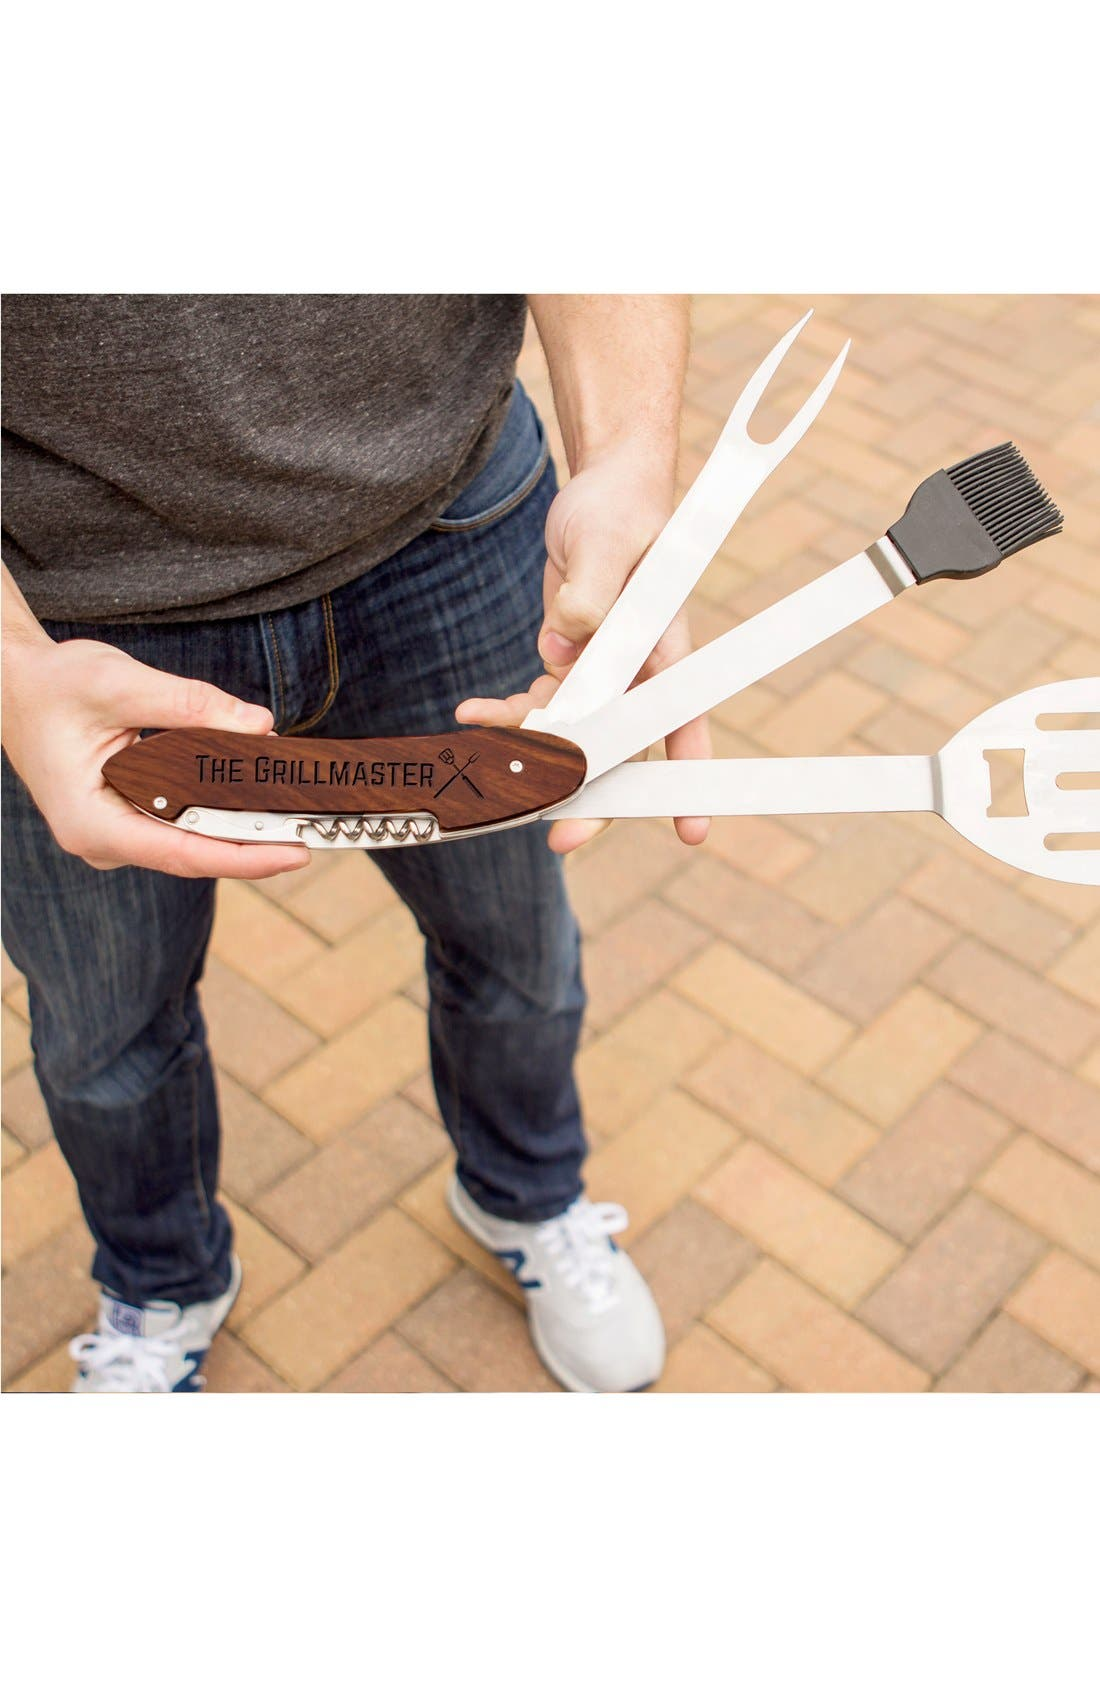 'Grillmaster' BBQ Multi Tool,                             Alternate thumbnail 5, color,                             BROWN